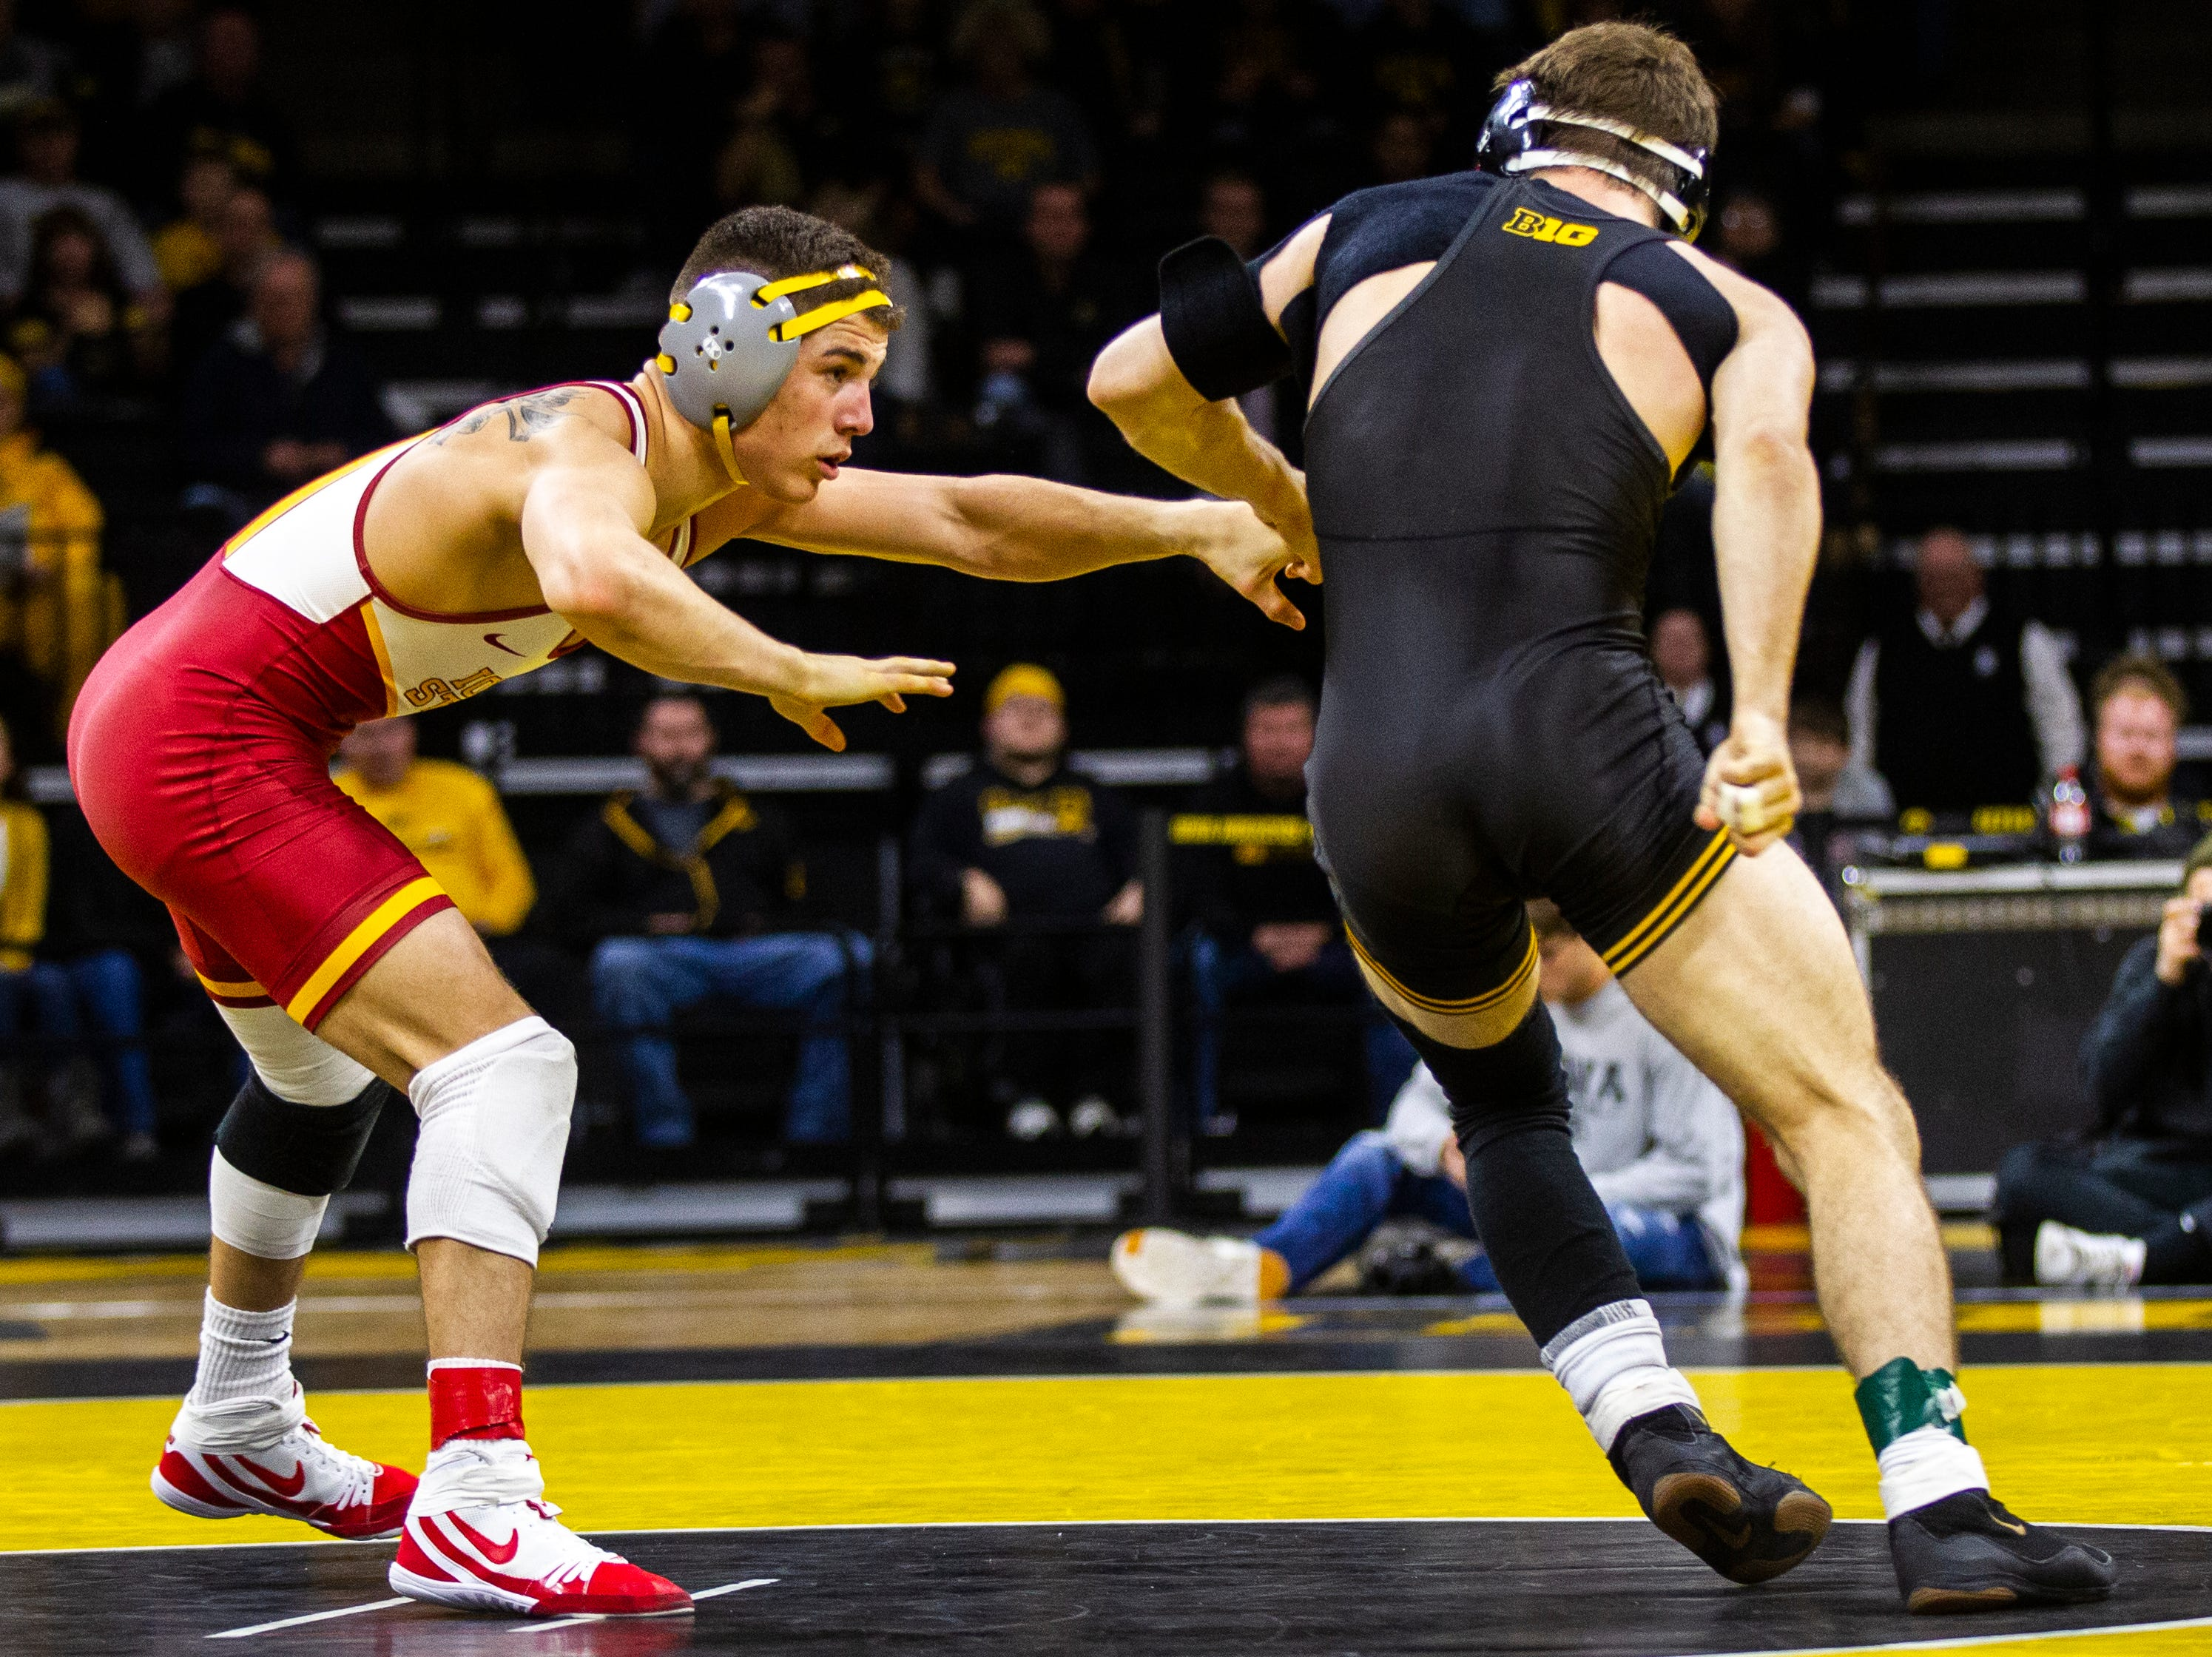 Iowa's Austin DeSanto, right, gets an escape while wrestling Iowa State's Austin Gomez at 133 during a NCAA Cy-Hawk series wrestling dual on Saturday, Dec. 1, 2018, at Carver-Hawkeye Arena in Iowa City.